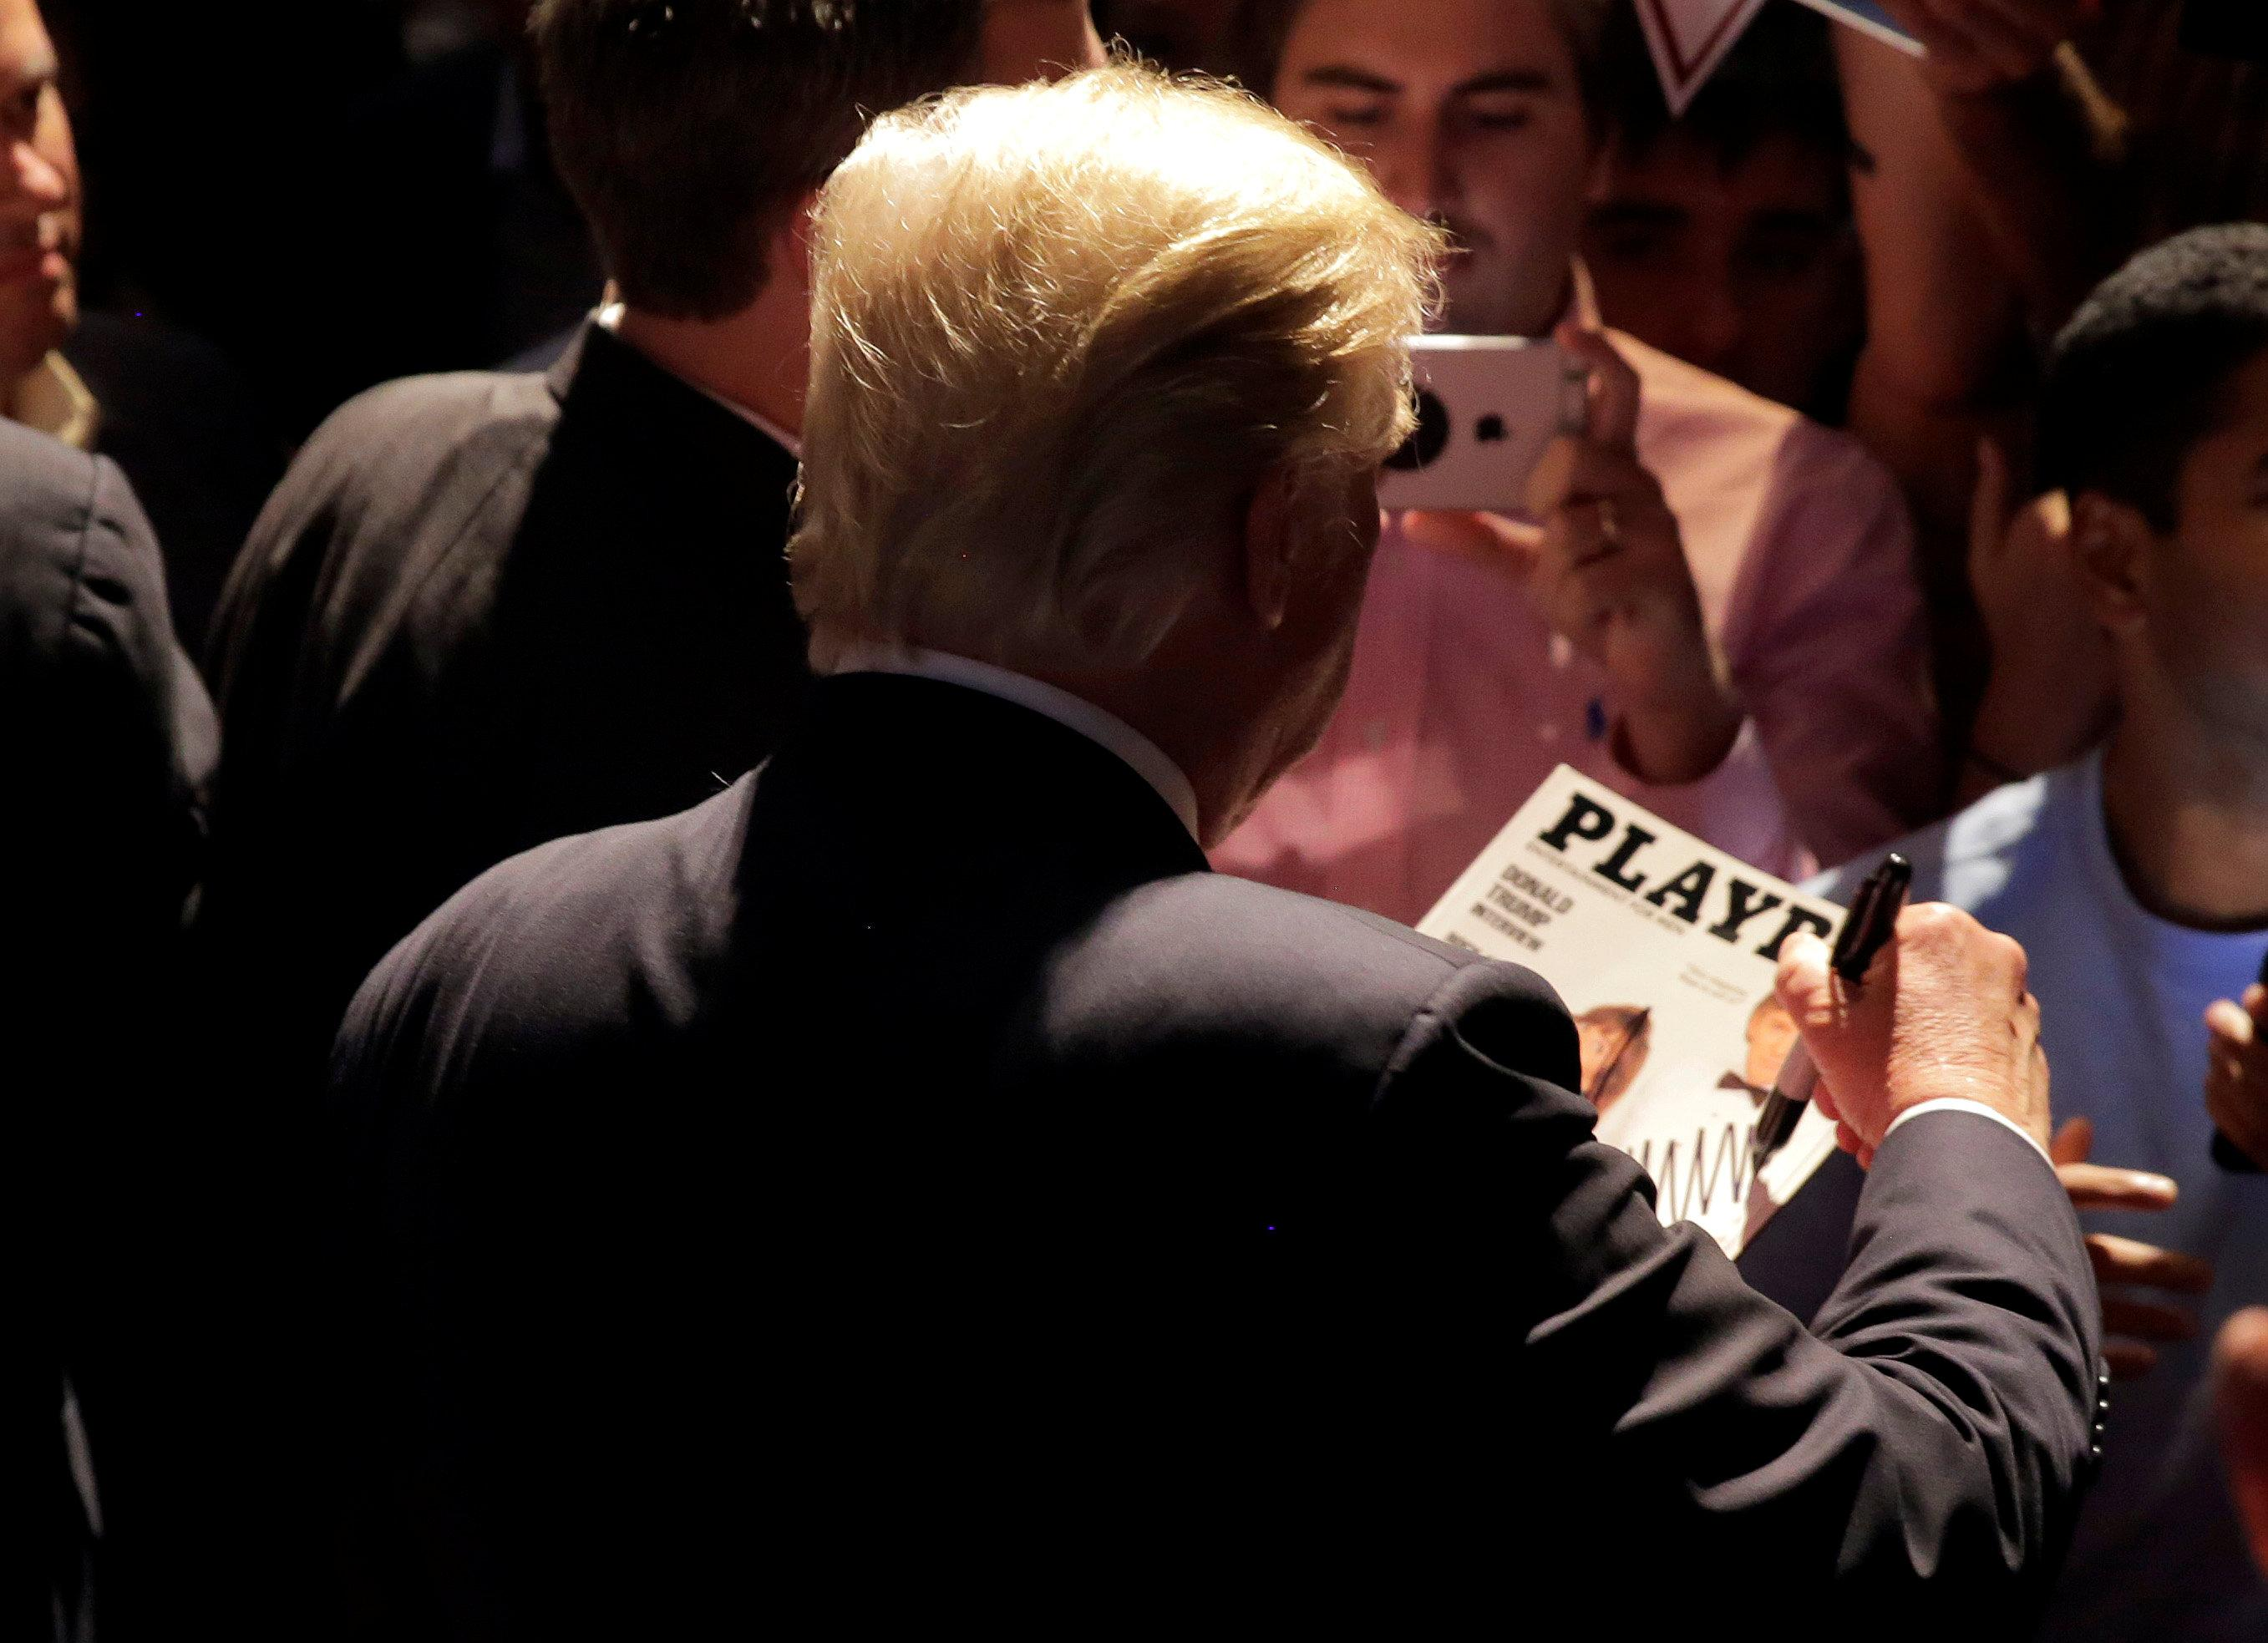 <p>Republican presidential candidate Donald Trump signs a copy of <em>Playboy</em> magazine at a campaign rally in Raleigh, N.C., July 5, 2016. (Photo: Joshua Roberts/Reuters) </p>